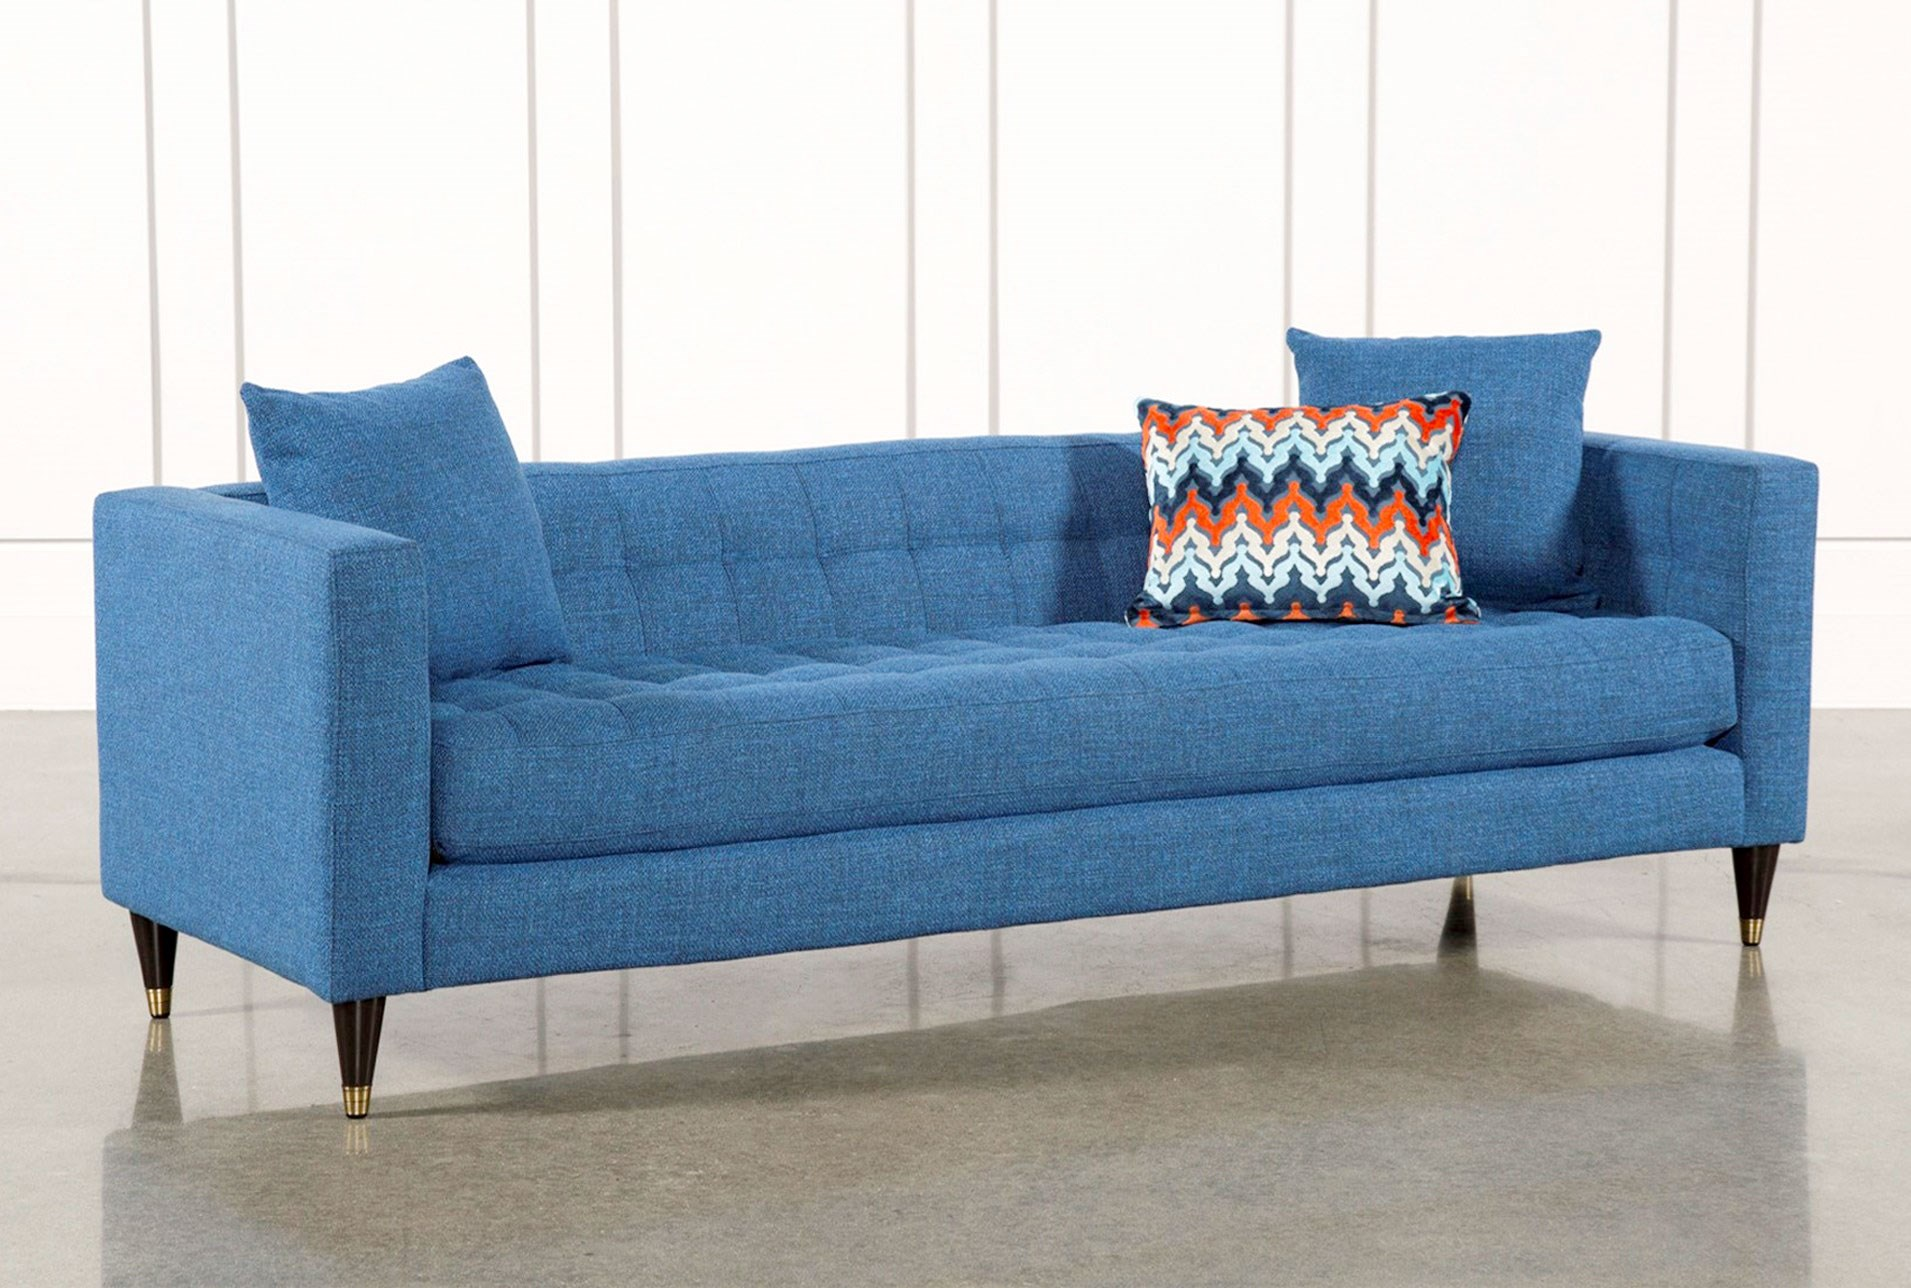 Tate estate sofa qty 1 has been successfully added to your cart